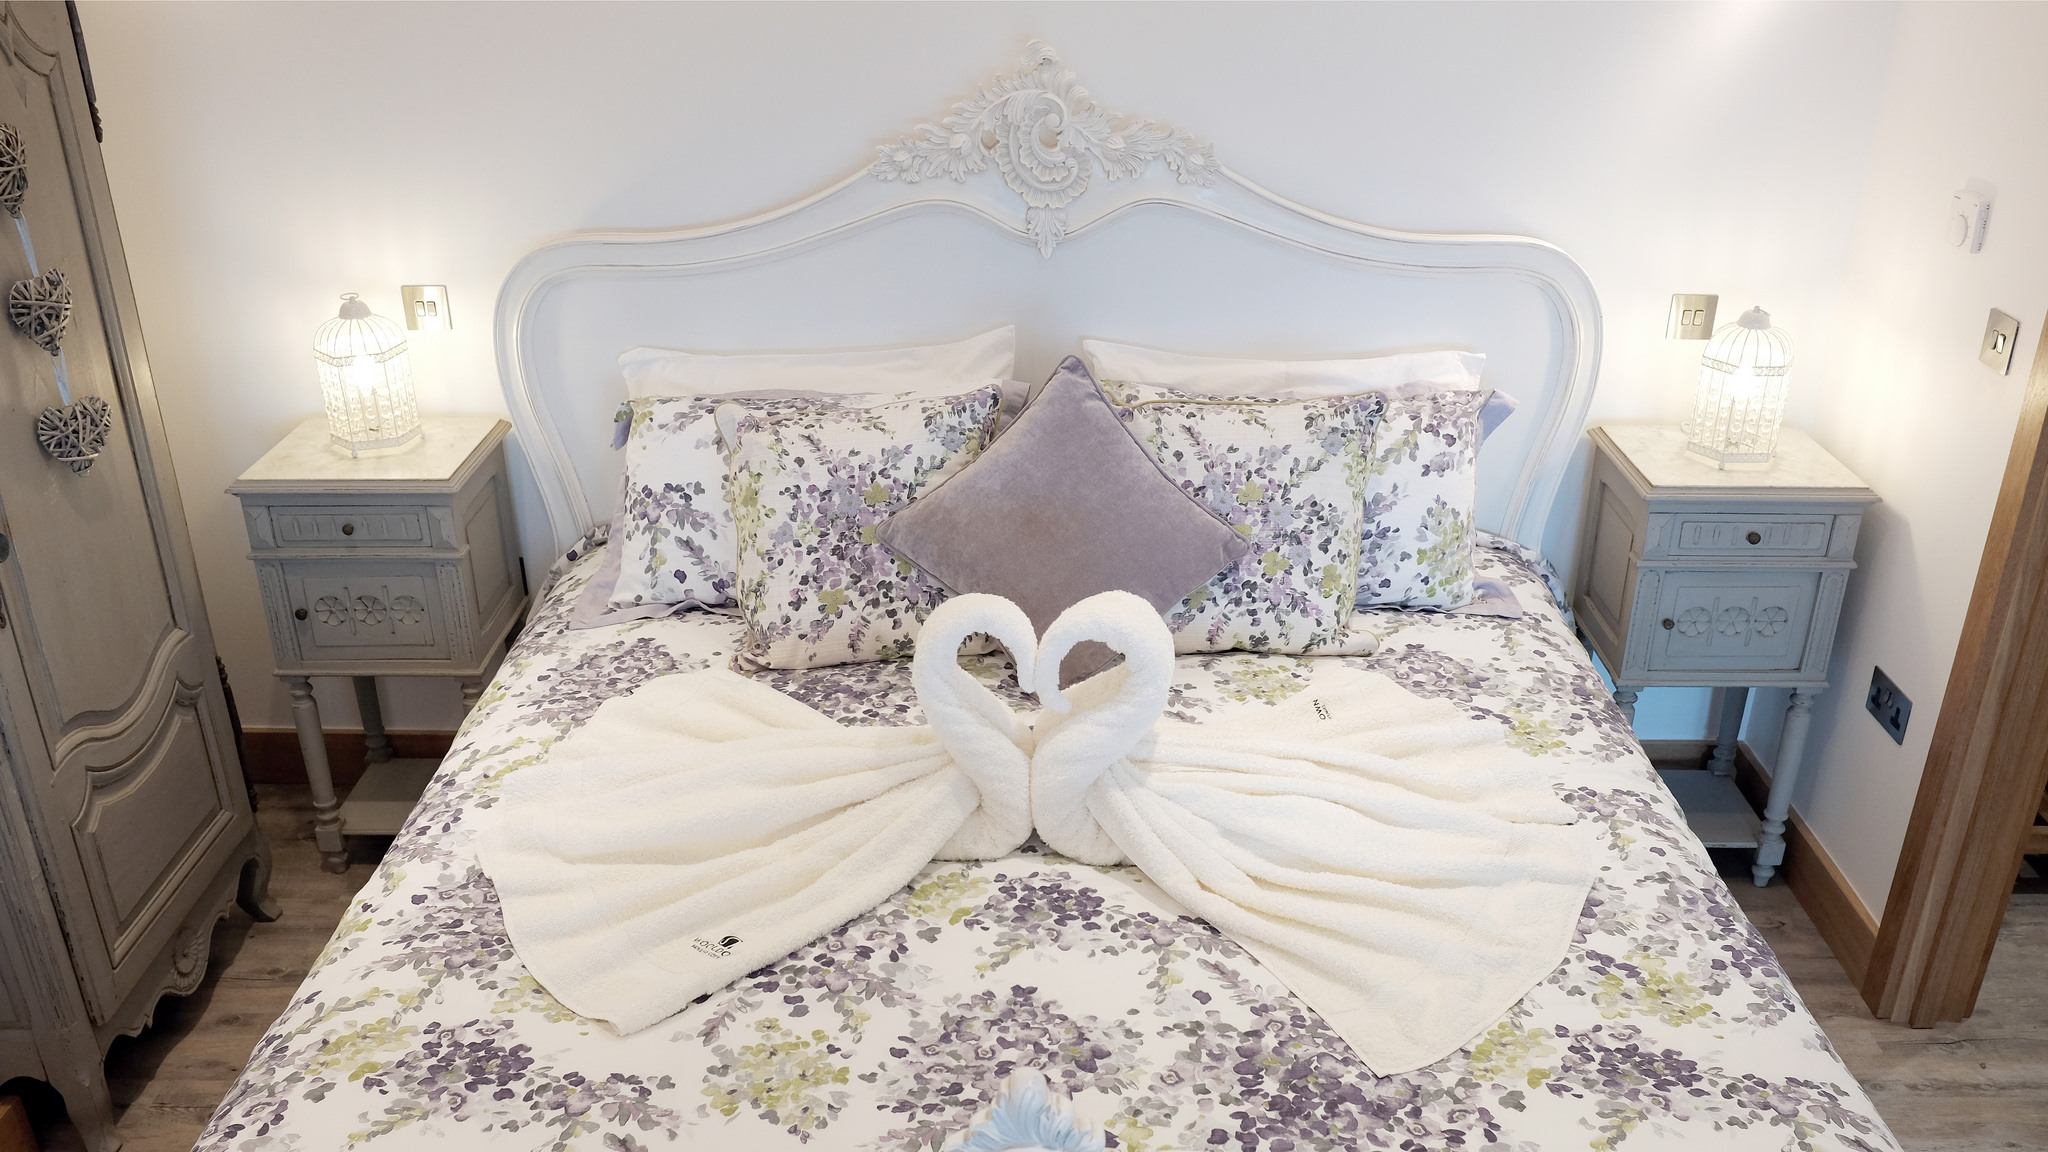 Bijou's super-king size bed and soft towels